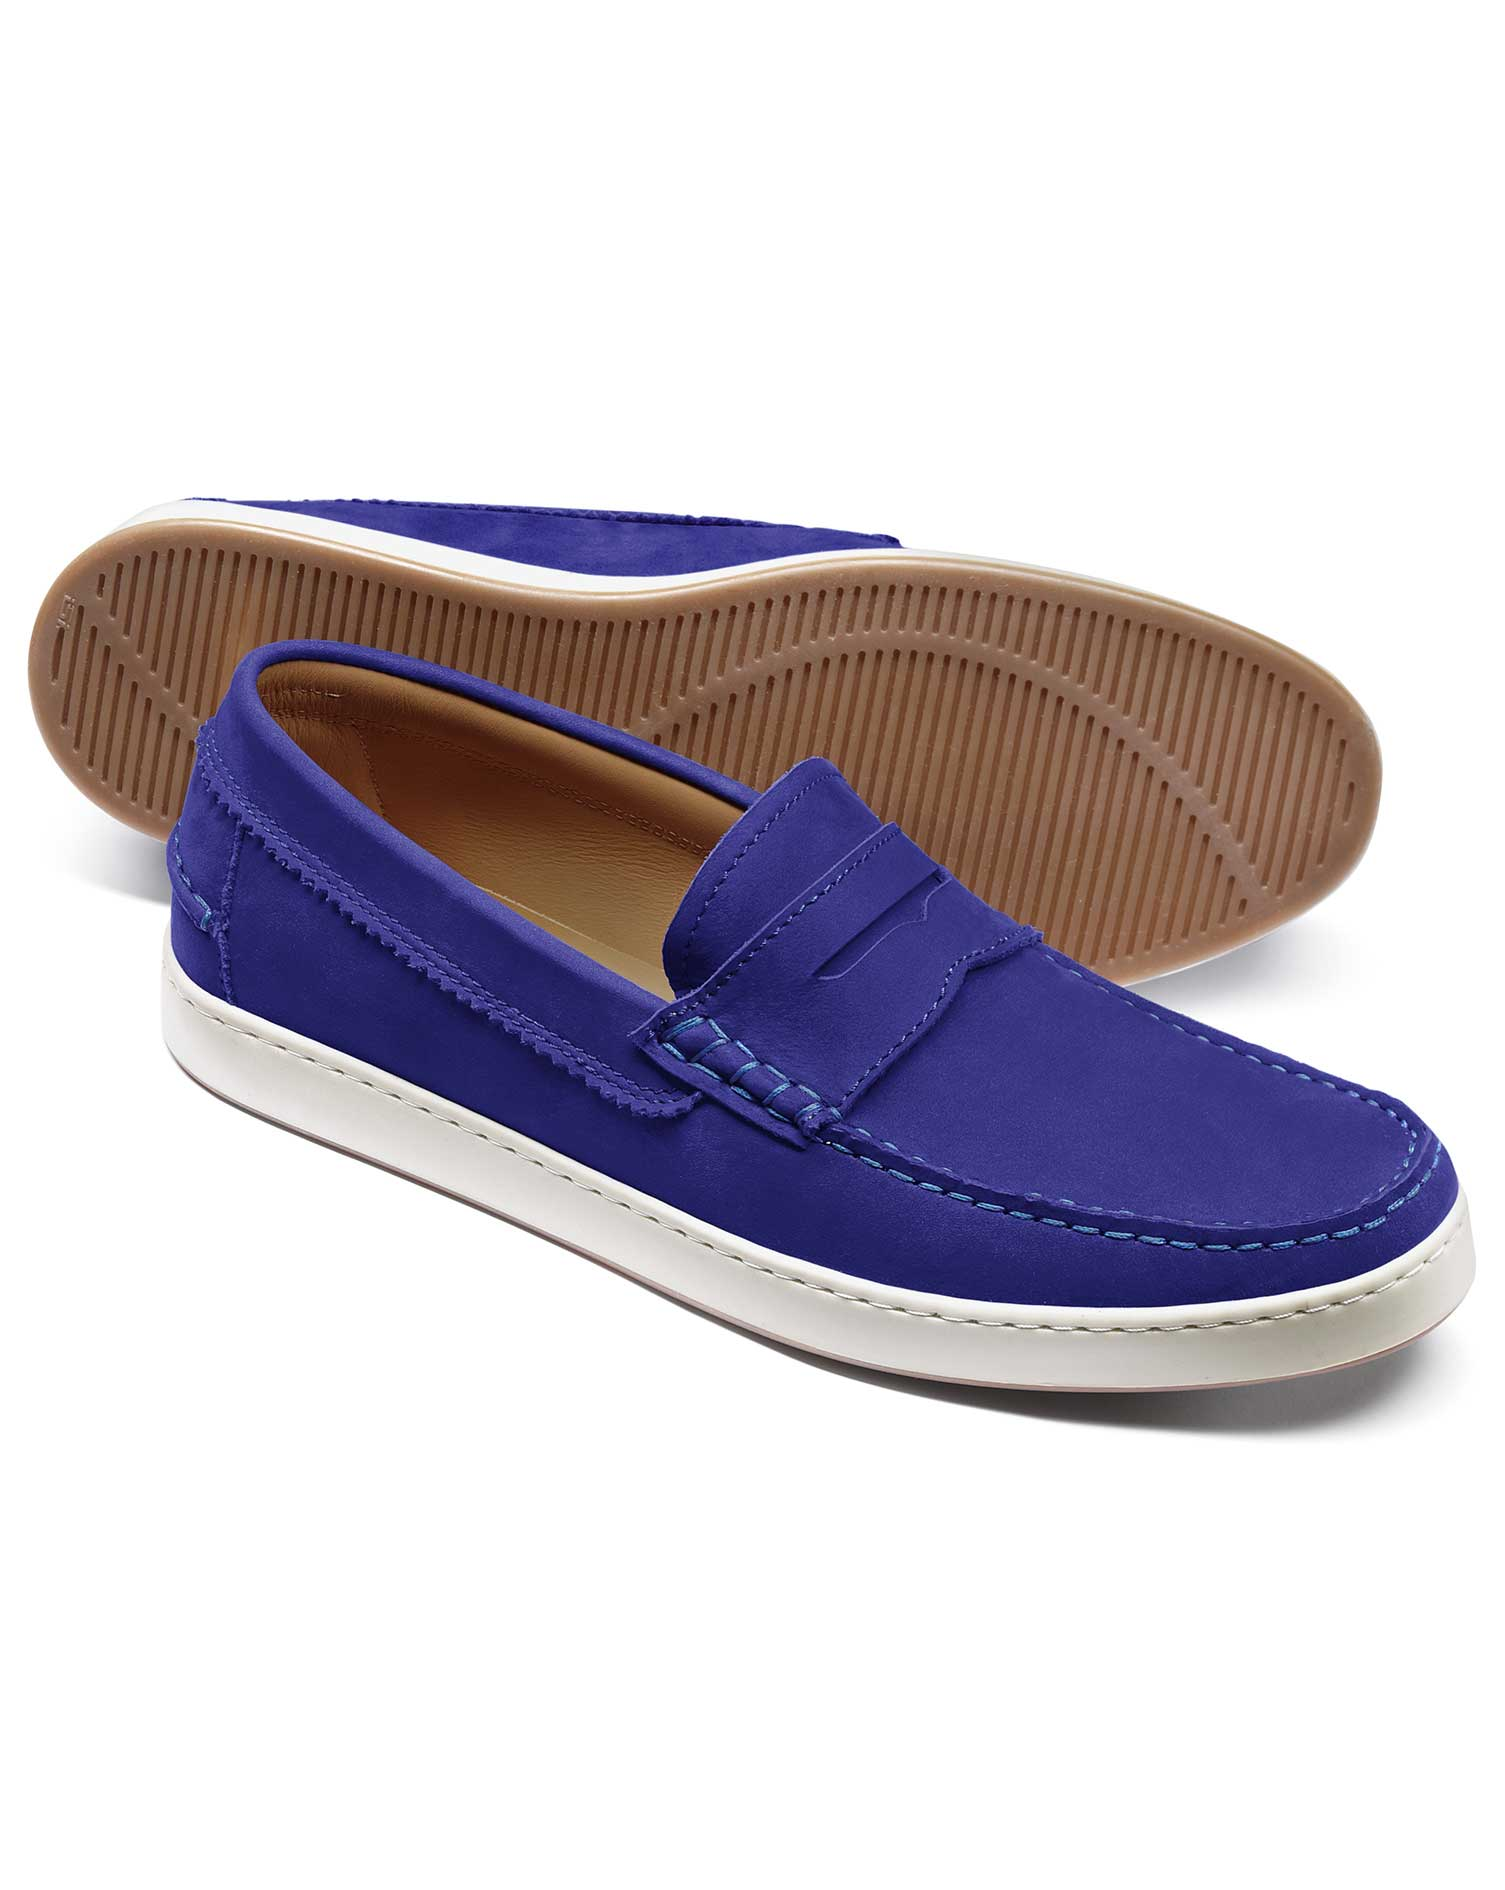 Blue Saddle Loafer Size 10 R by Charles Tyrwhitt